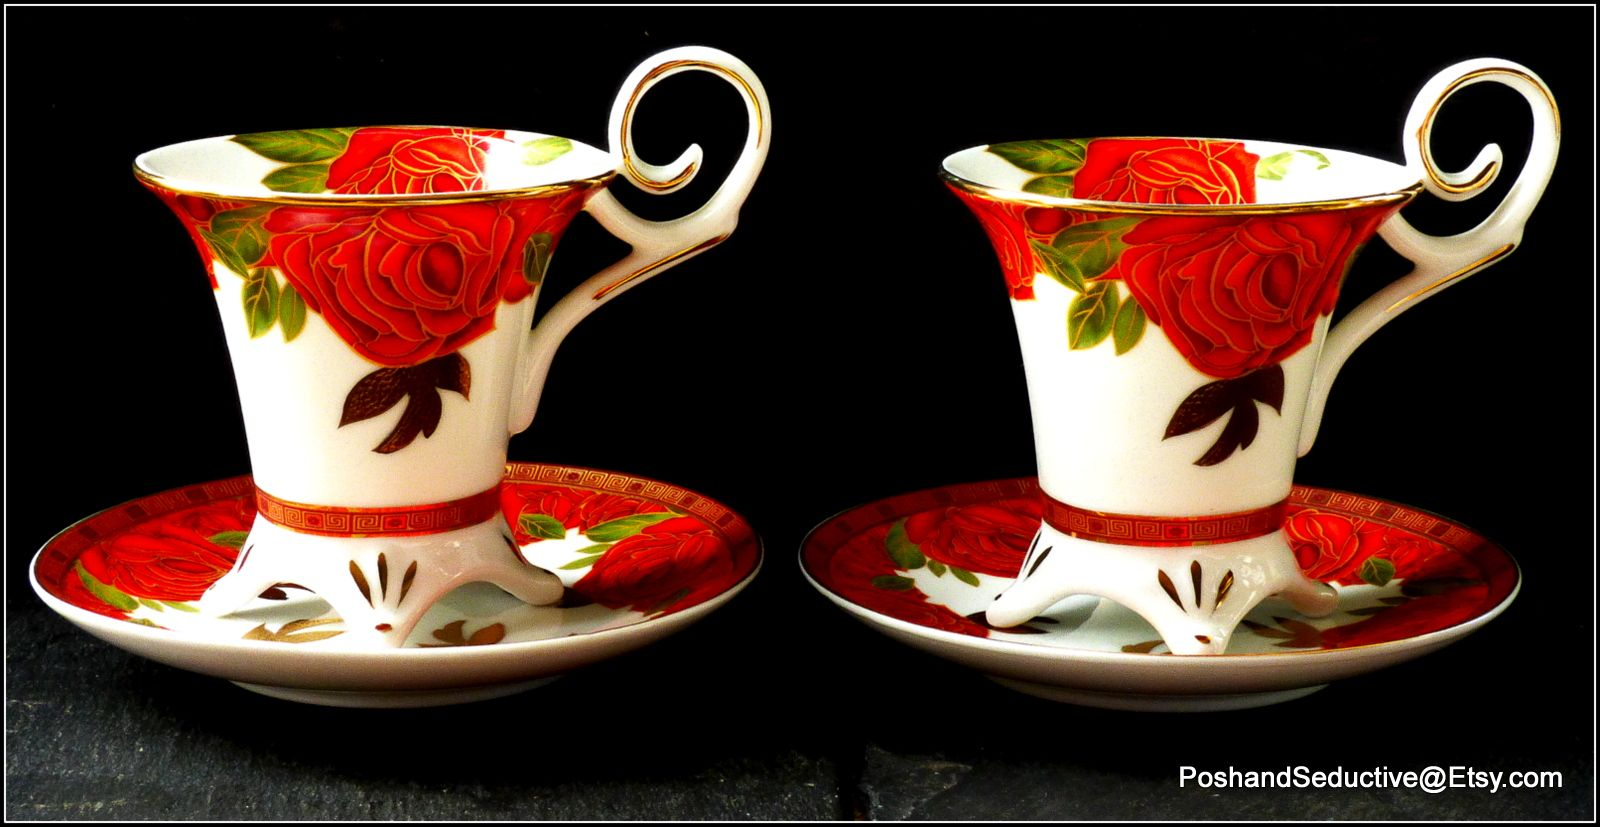 Impressive So French By Decor Du Galion Limoges Footed Cups And Saucers Exquisite Red Rose Floral Pattern Generously G Handmade Market Etsy Finds Red Roses